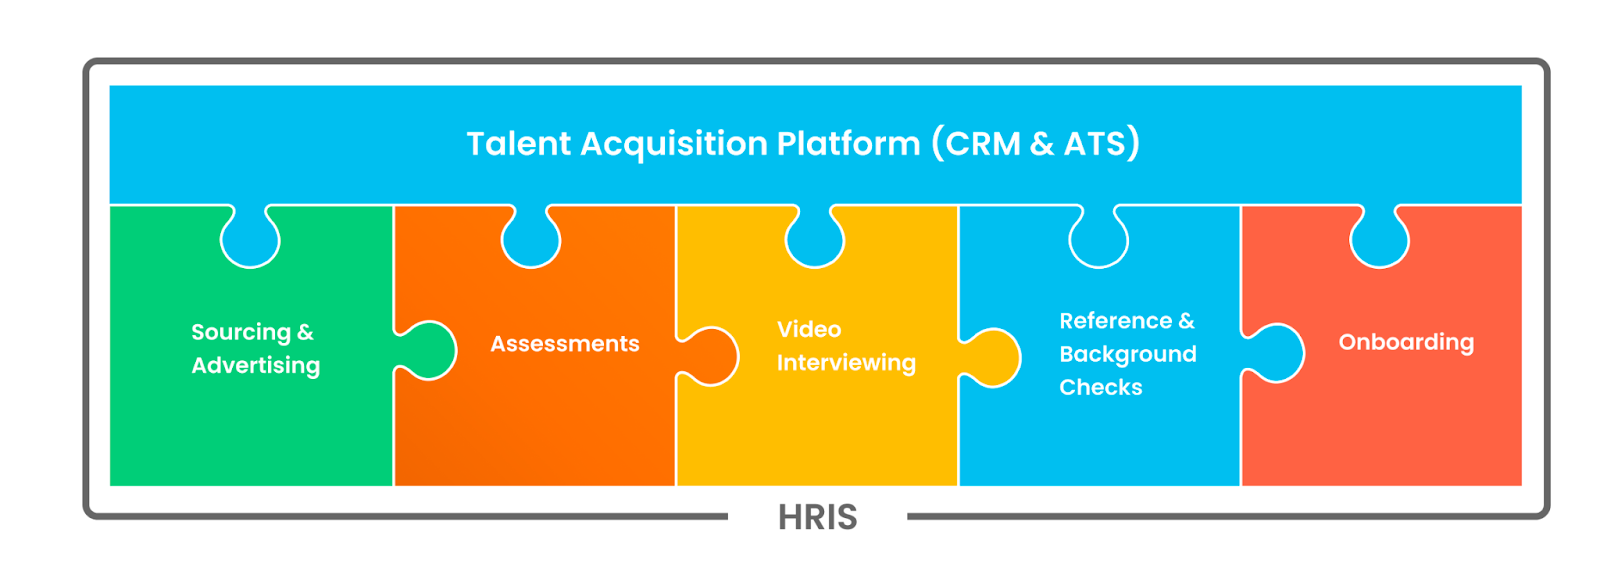 Best-of-Breed HR Technology Stack